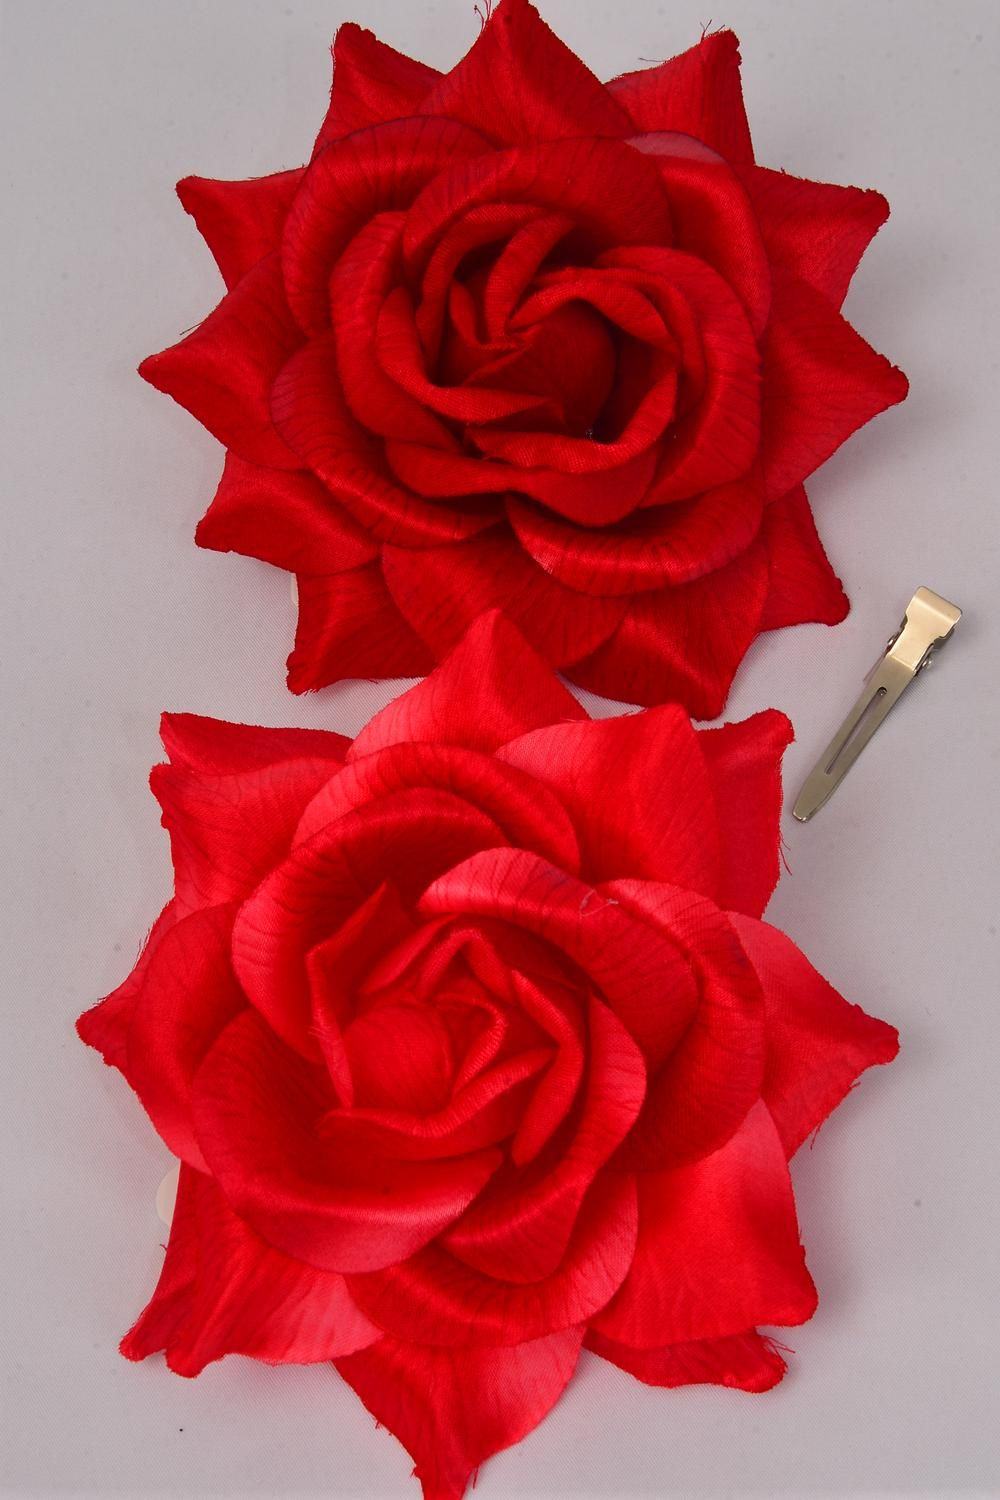 "Flower Silk Tea-Rose Jumbo Red Mix/DZ **Red Mix** Size-6"" Wide,Alligator Clip & Brooch & Elastic,6 Of each Red Color Asst,Hang Tag & UPC Code,W Clear Box"